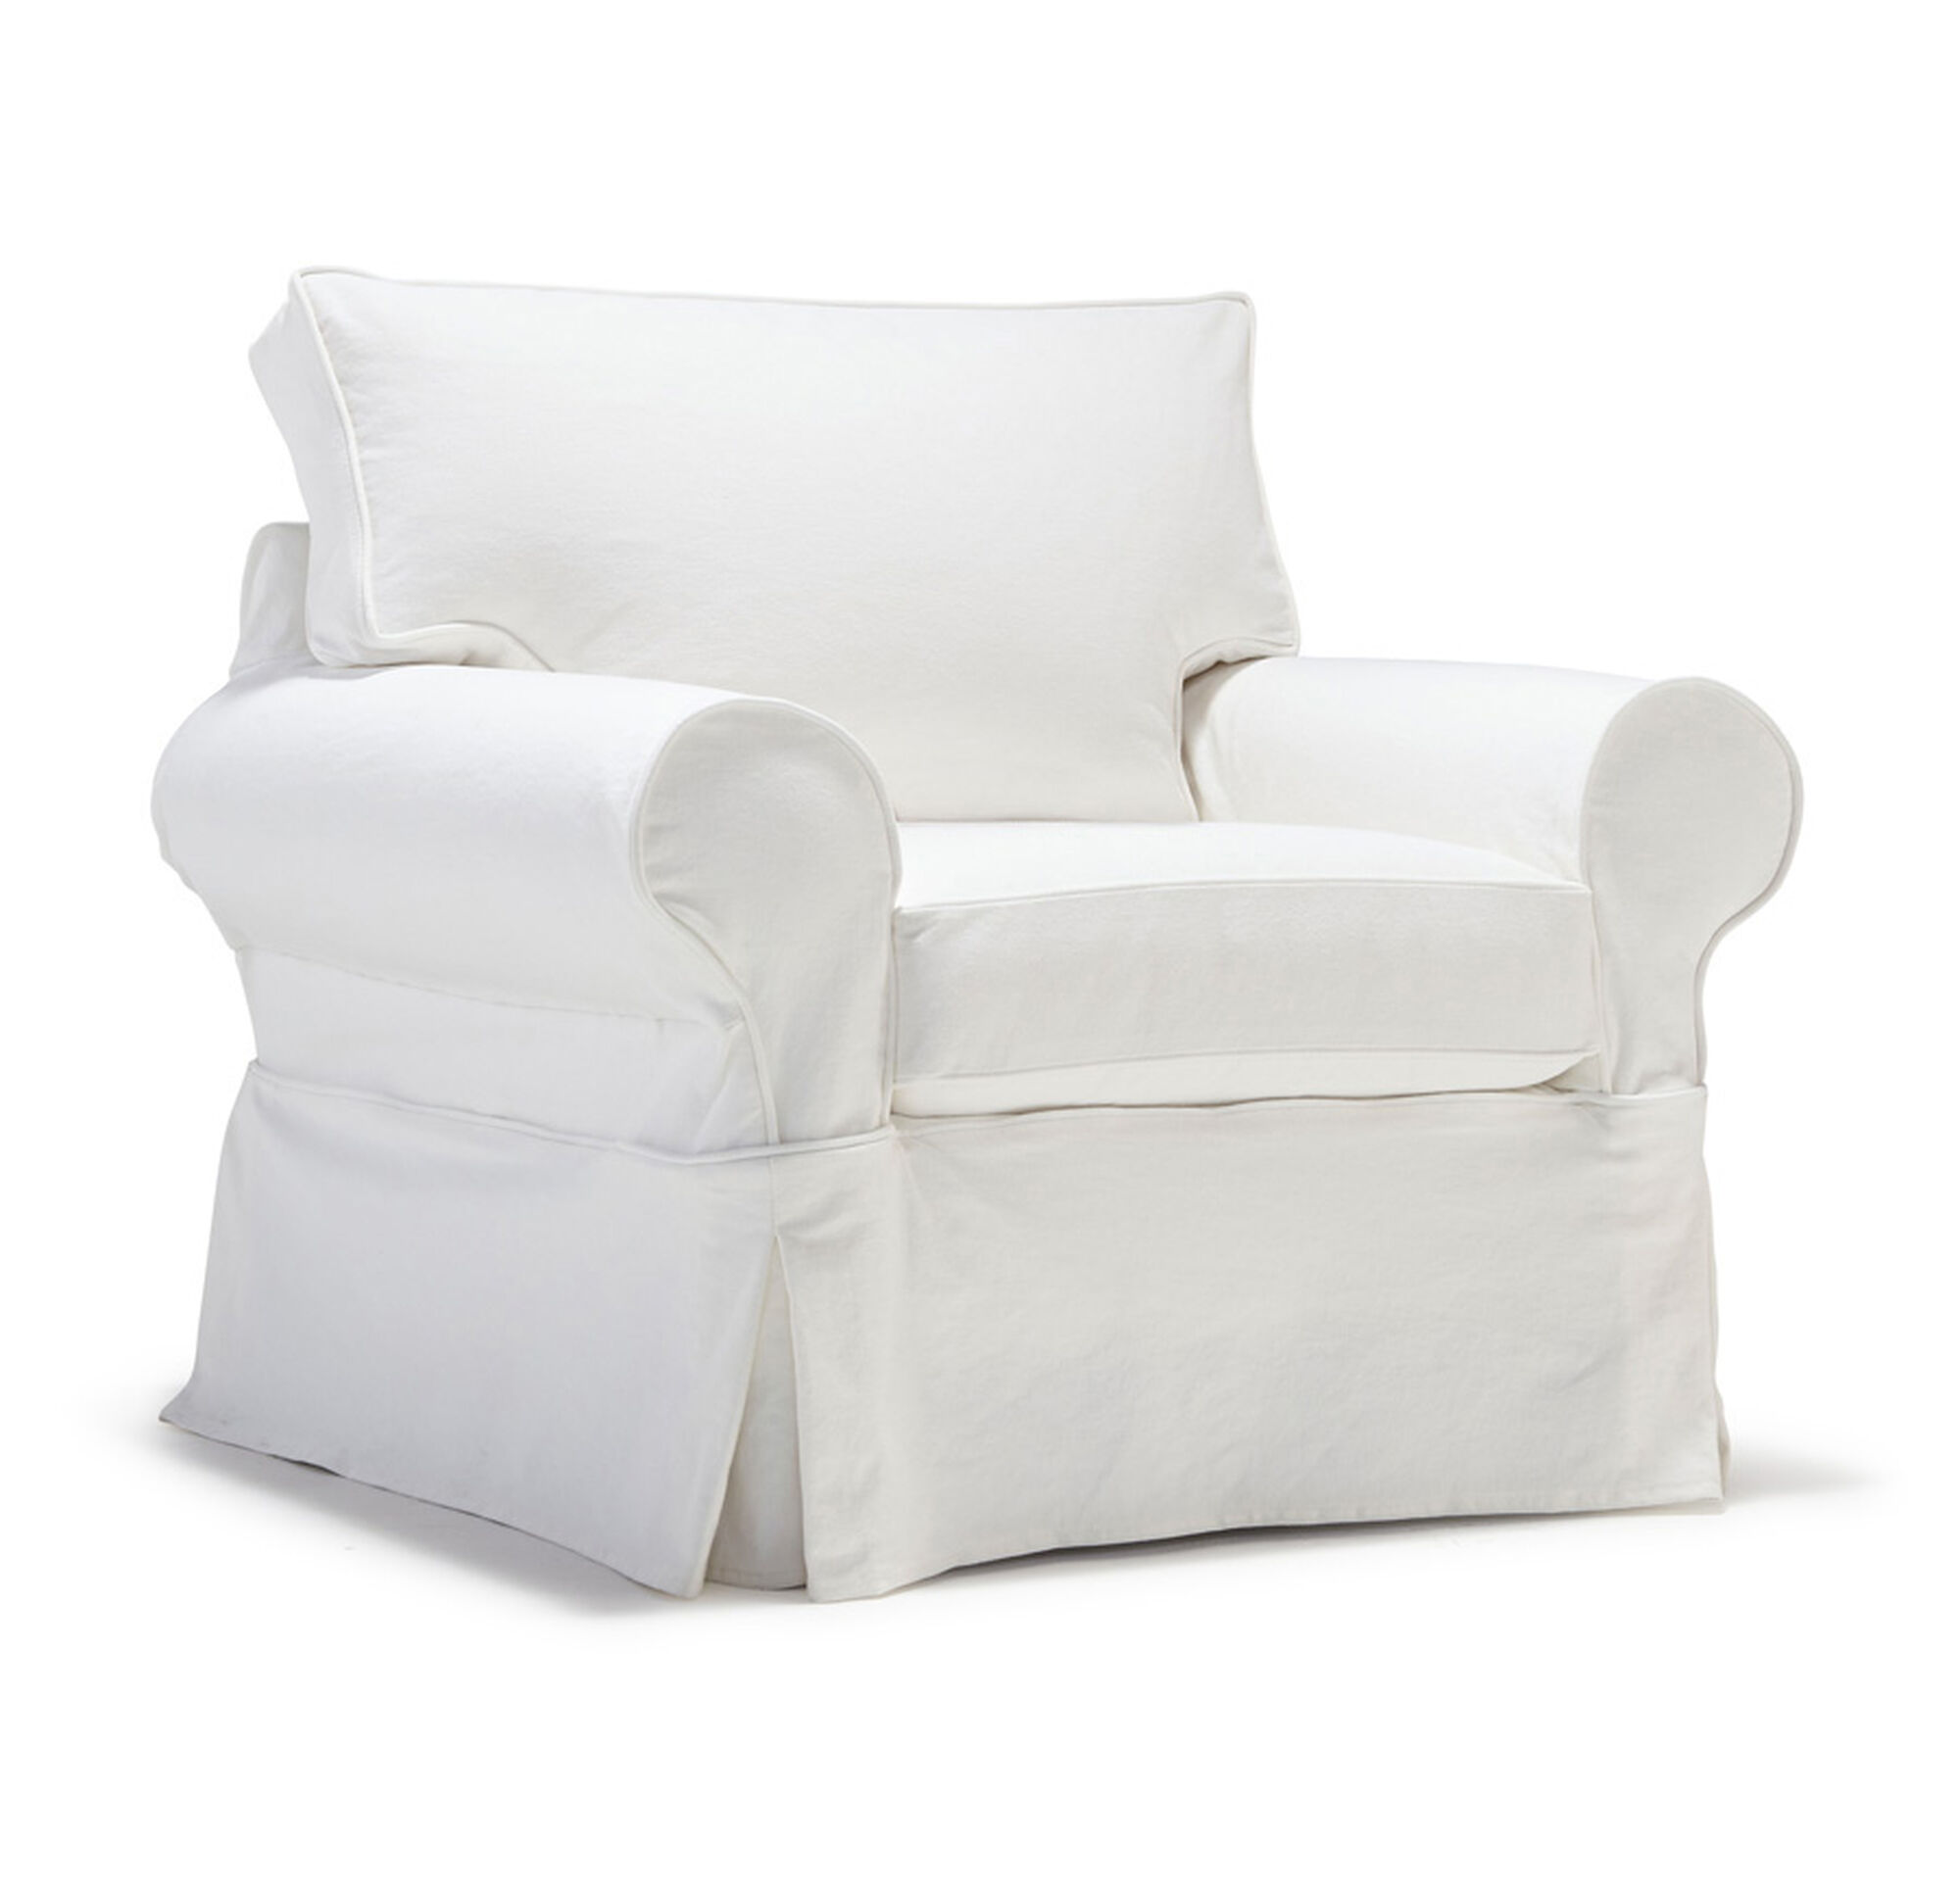 slipcover for long home wife whimsical last wing chairs gallery at best wingback chair the decoration slipcovers